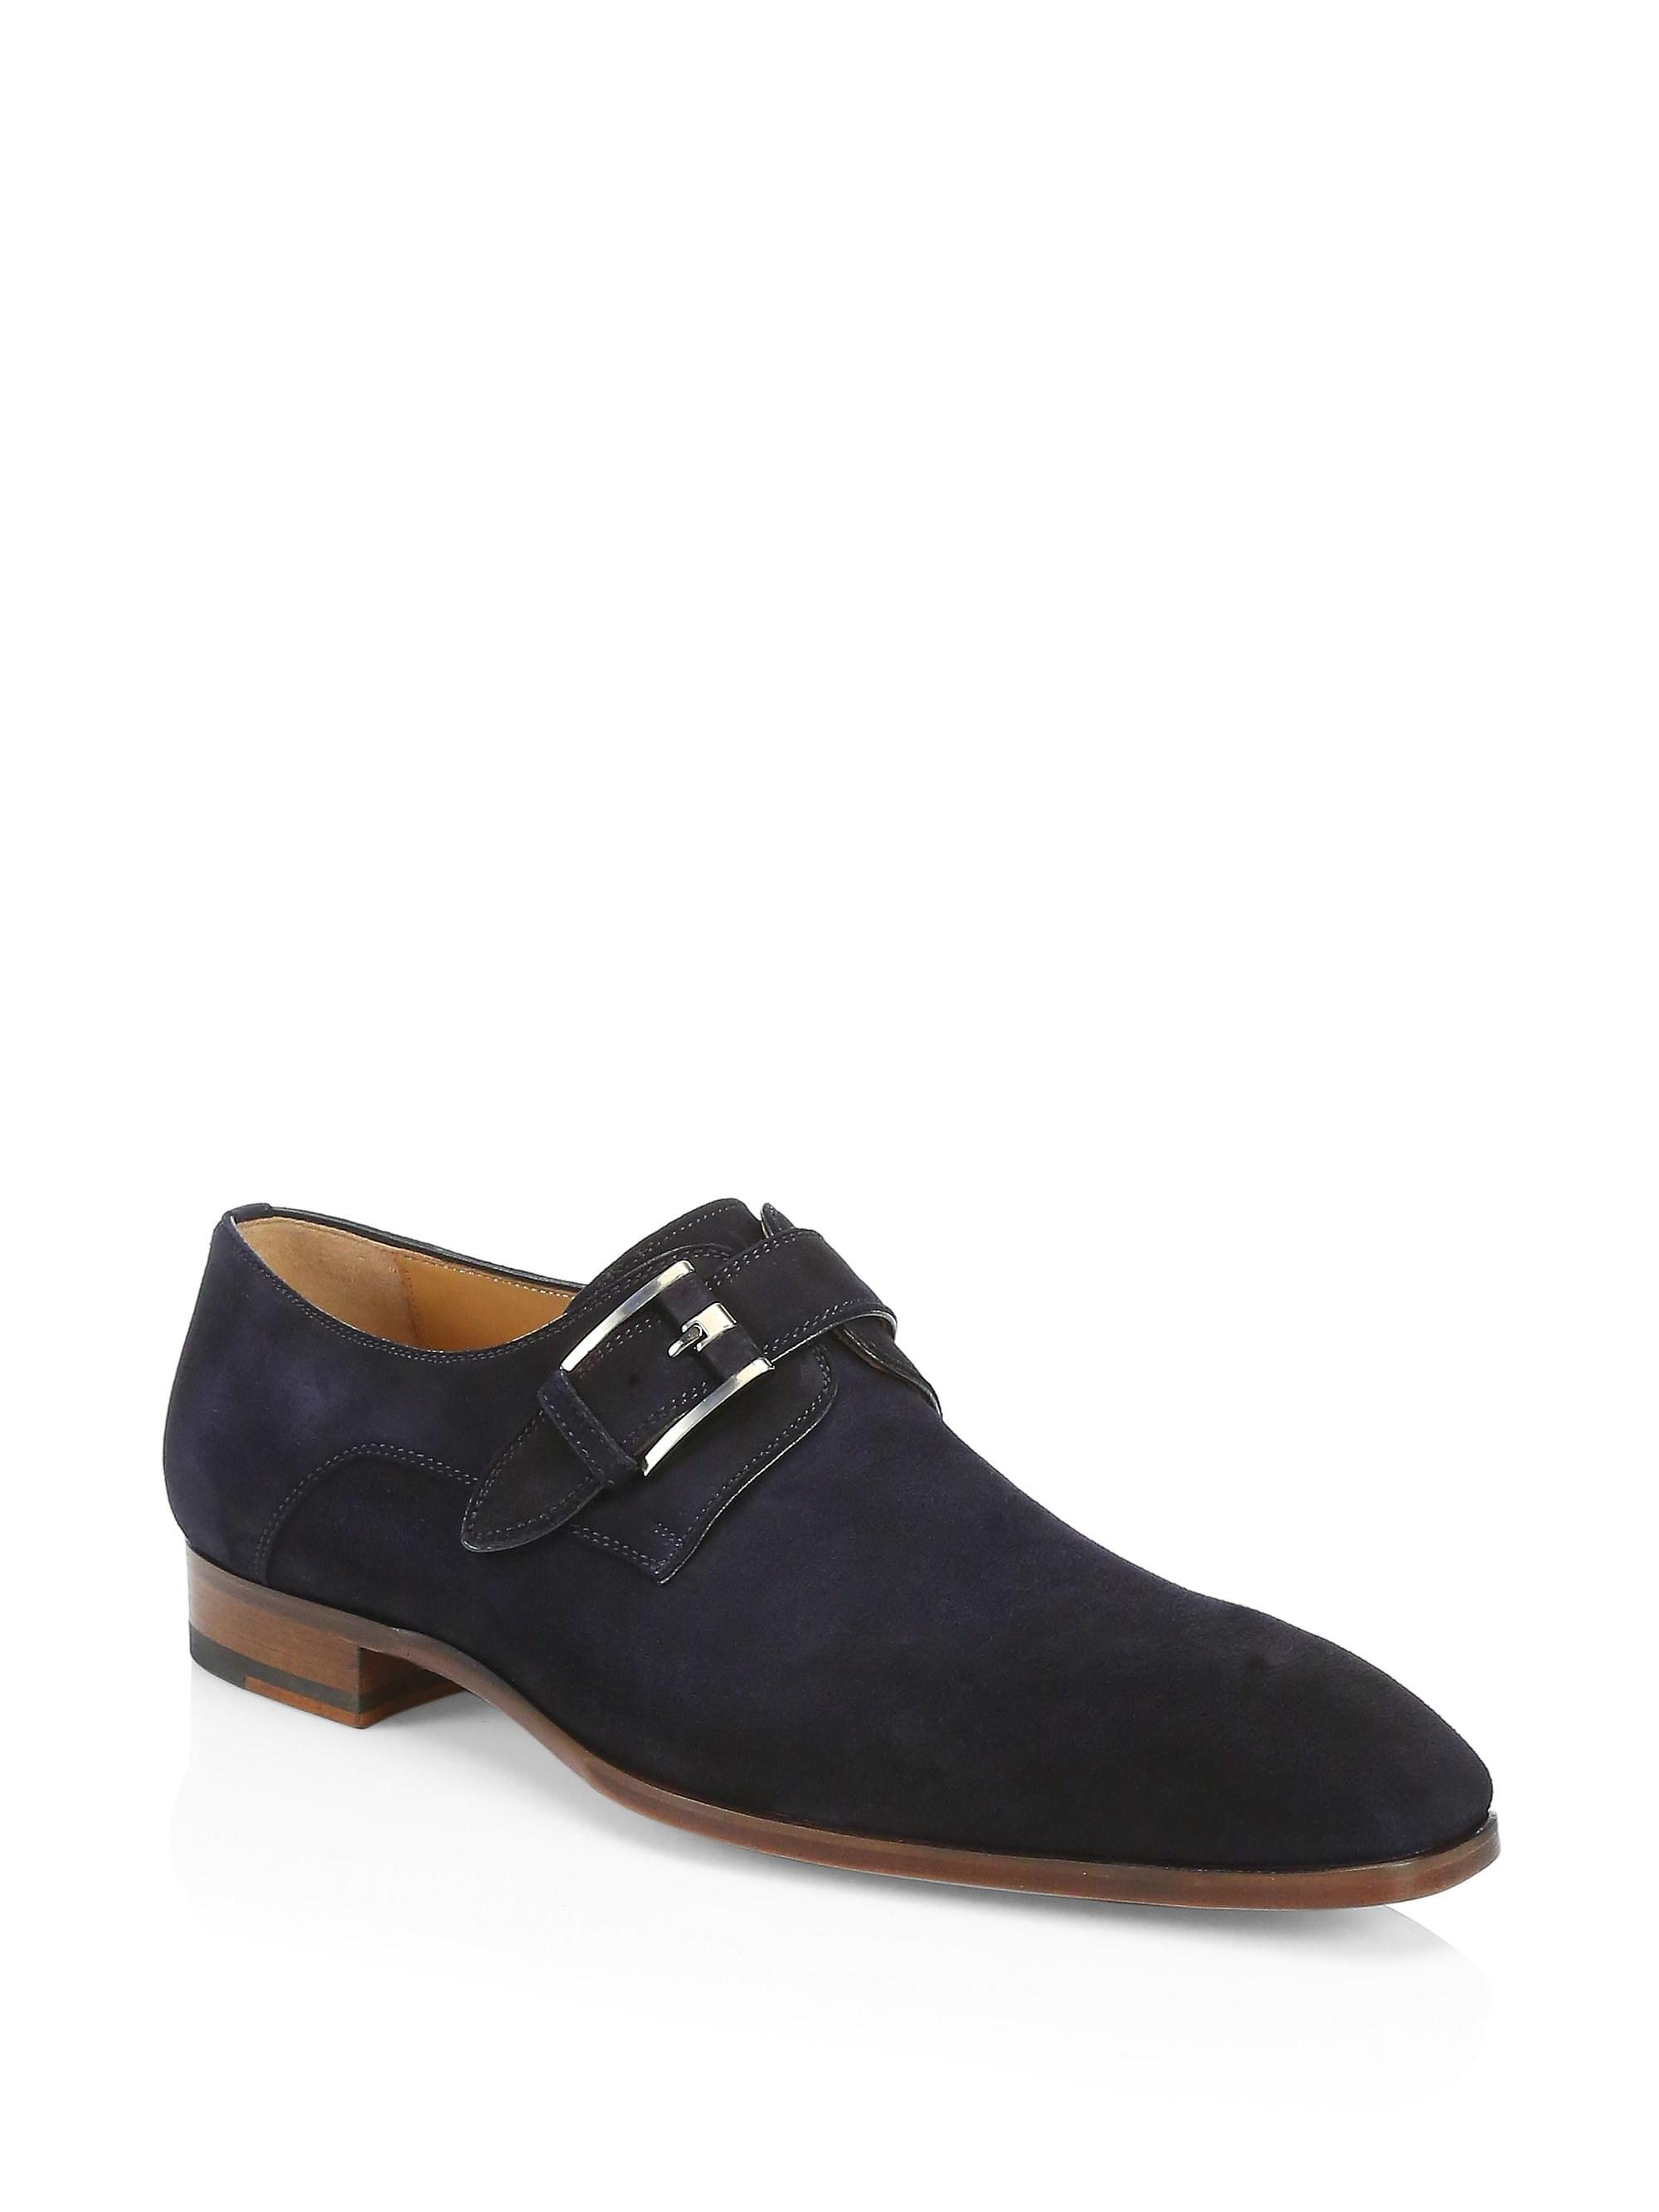 6fdae4f1e12bba Saks Fifth Avenue. Blue Men s Collection By Magnanni Suede Monk Strap Shoes  ...